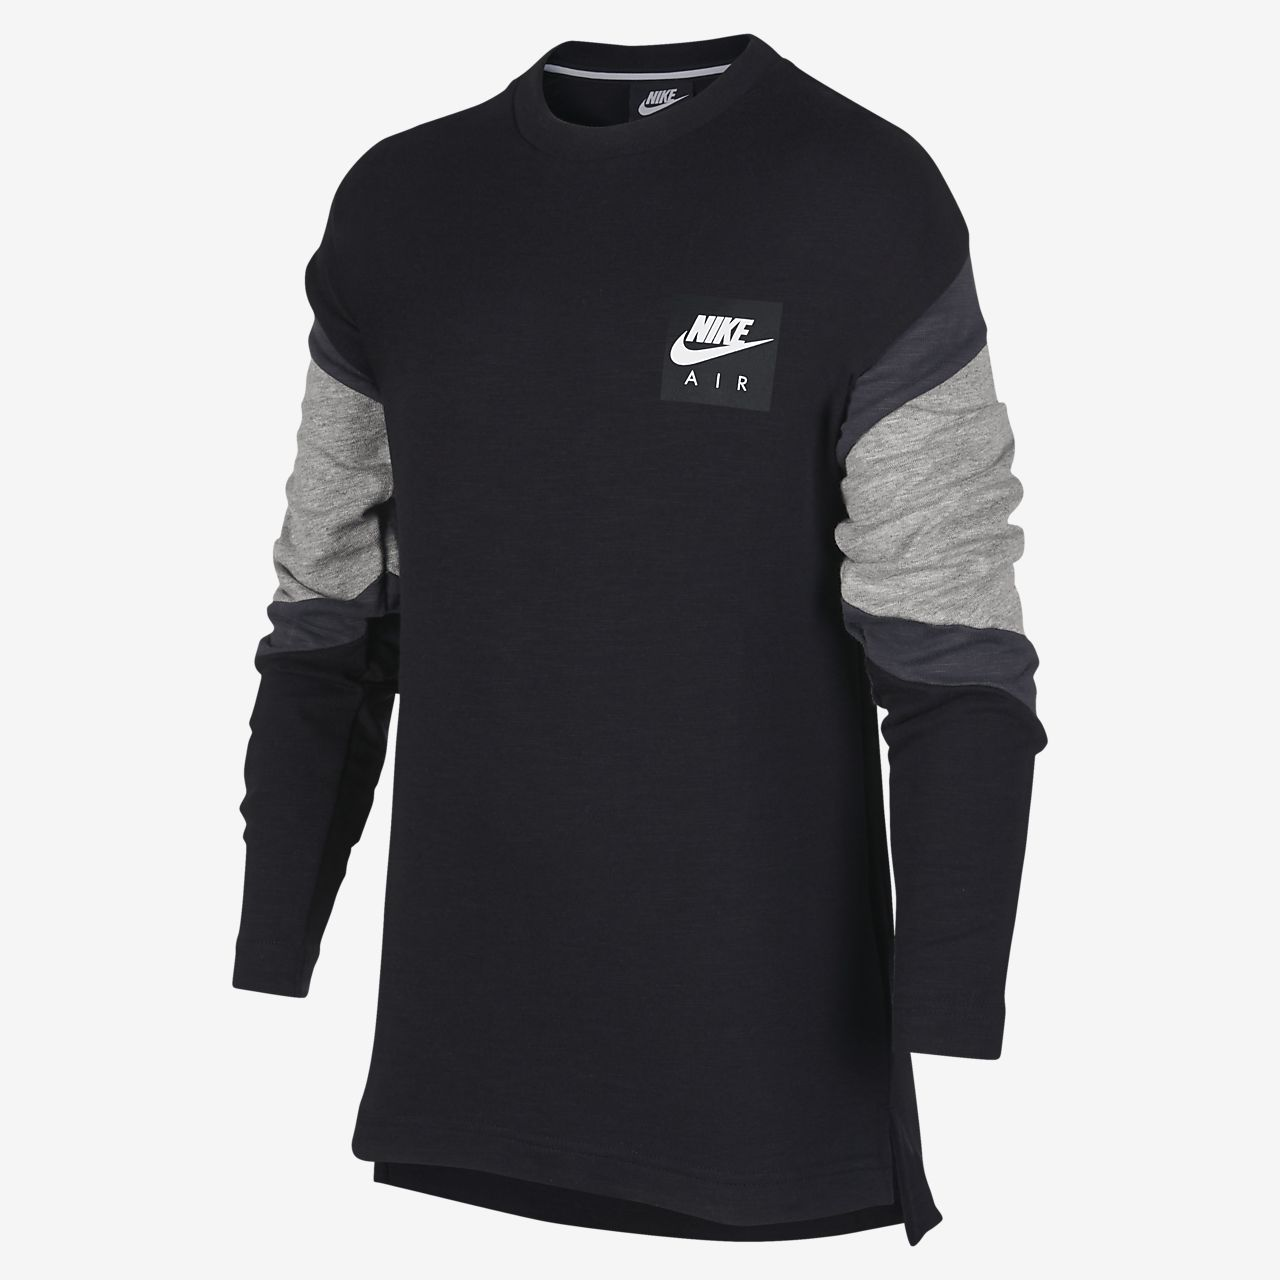 6950688b7176 Nike Air Older Kids  (Boys ) Long-Sleeve Top. Nike.com AU